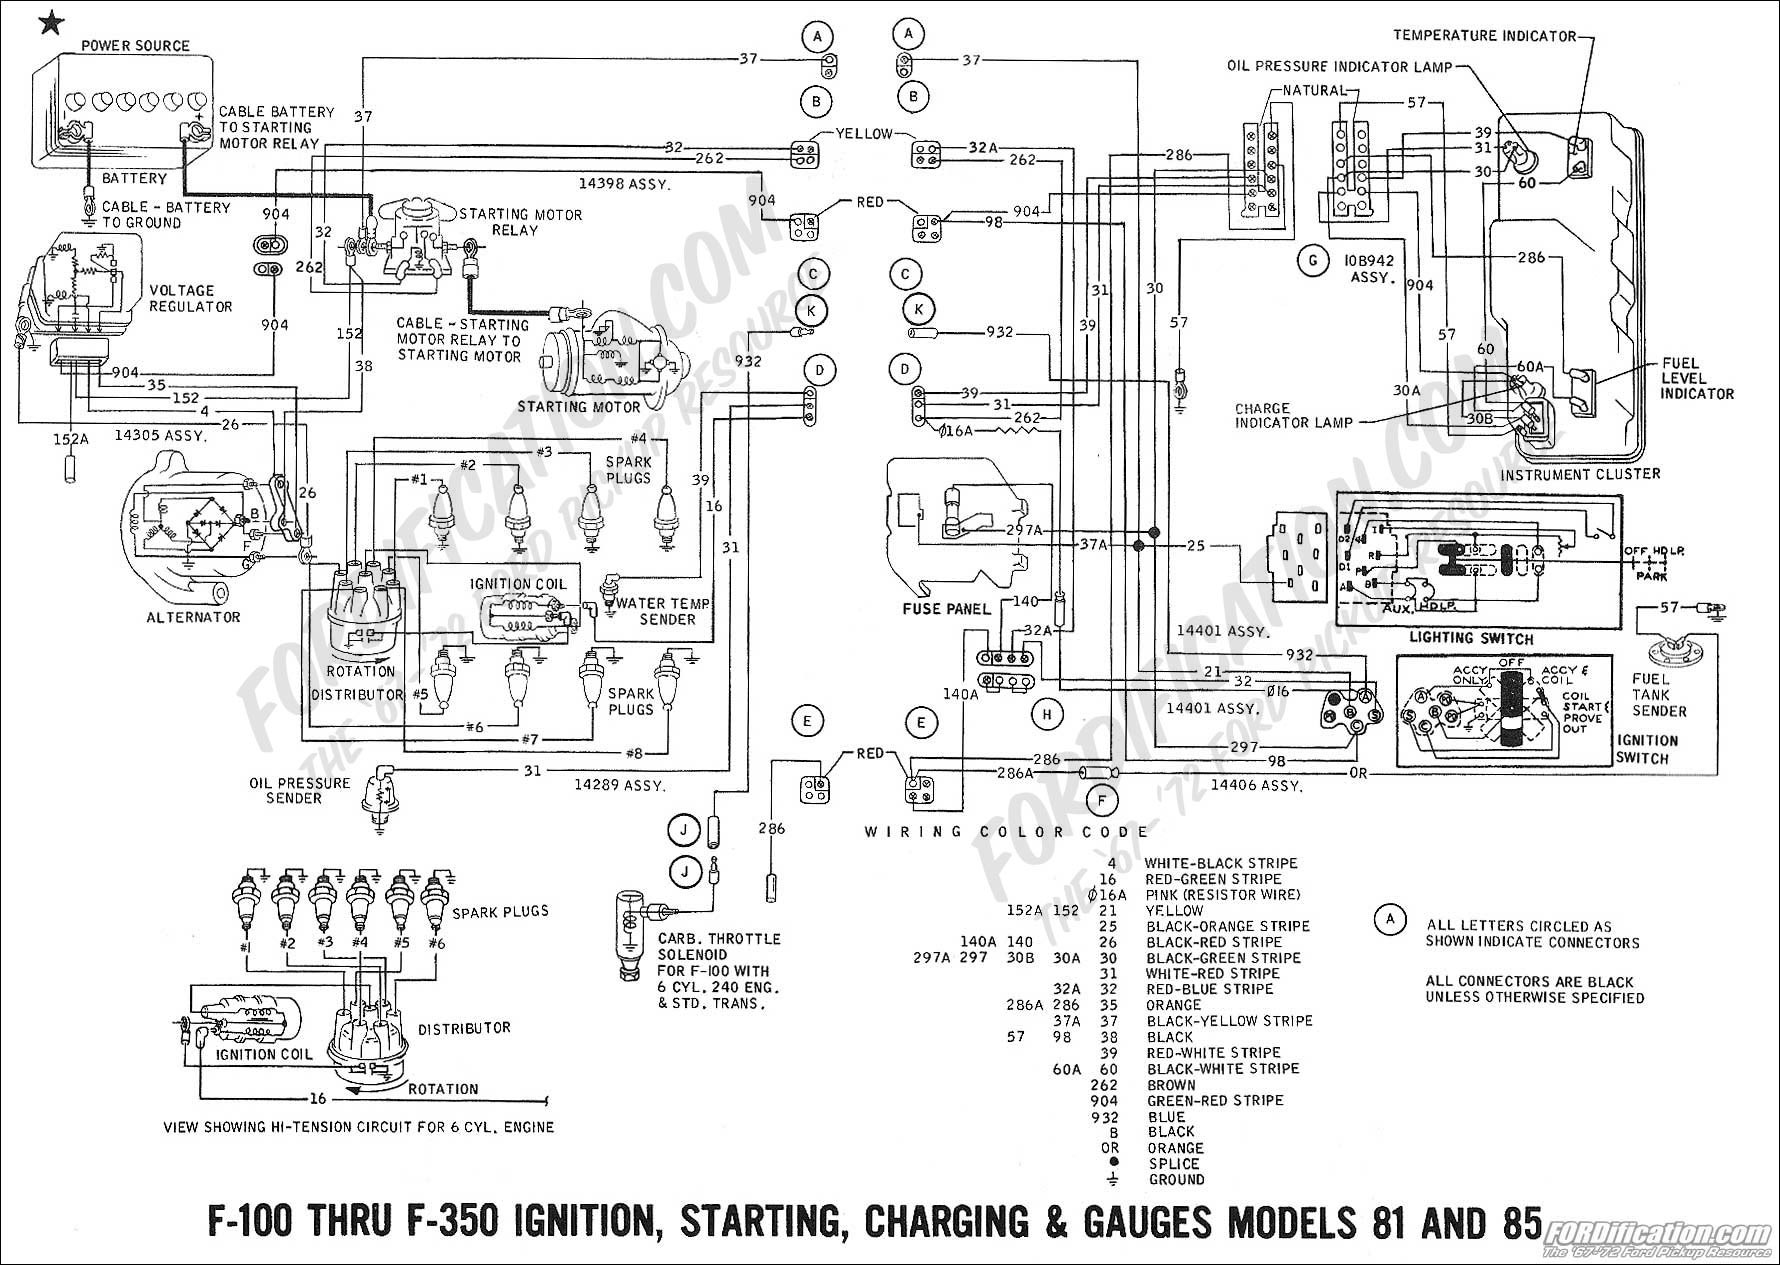 1987 ford f350 wiring diagram schematics wiring diagrams u2022 rh seniorlivinguniversity co 87 ford bronco wiring diagram 87 ford bronco wiring diagram